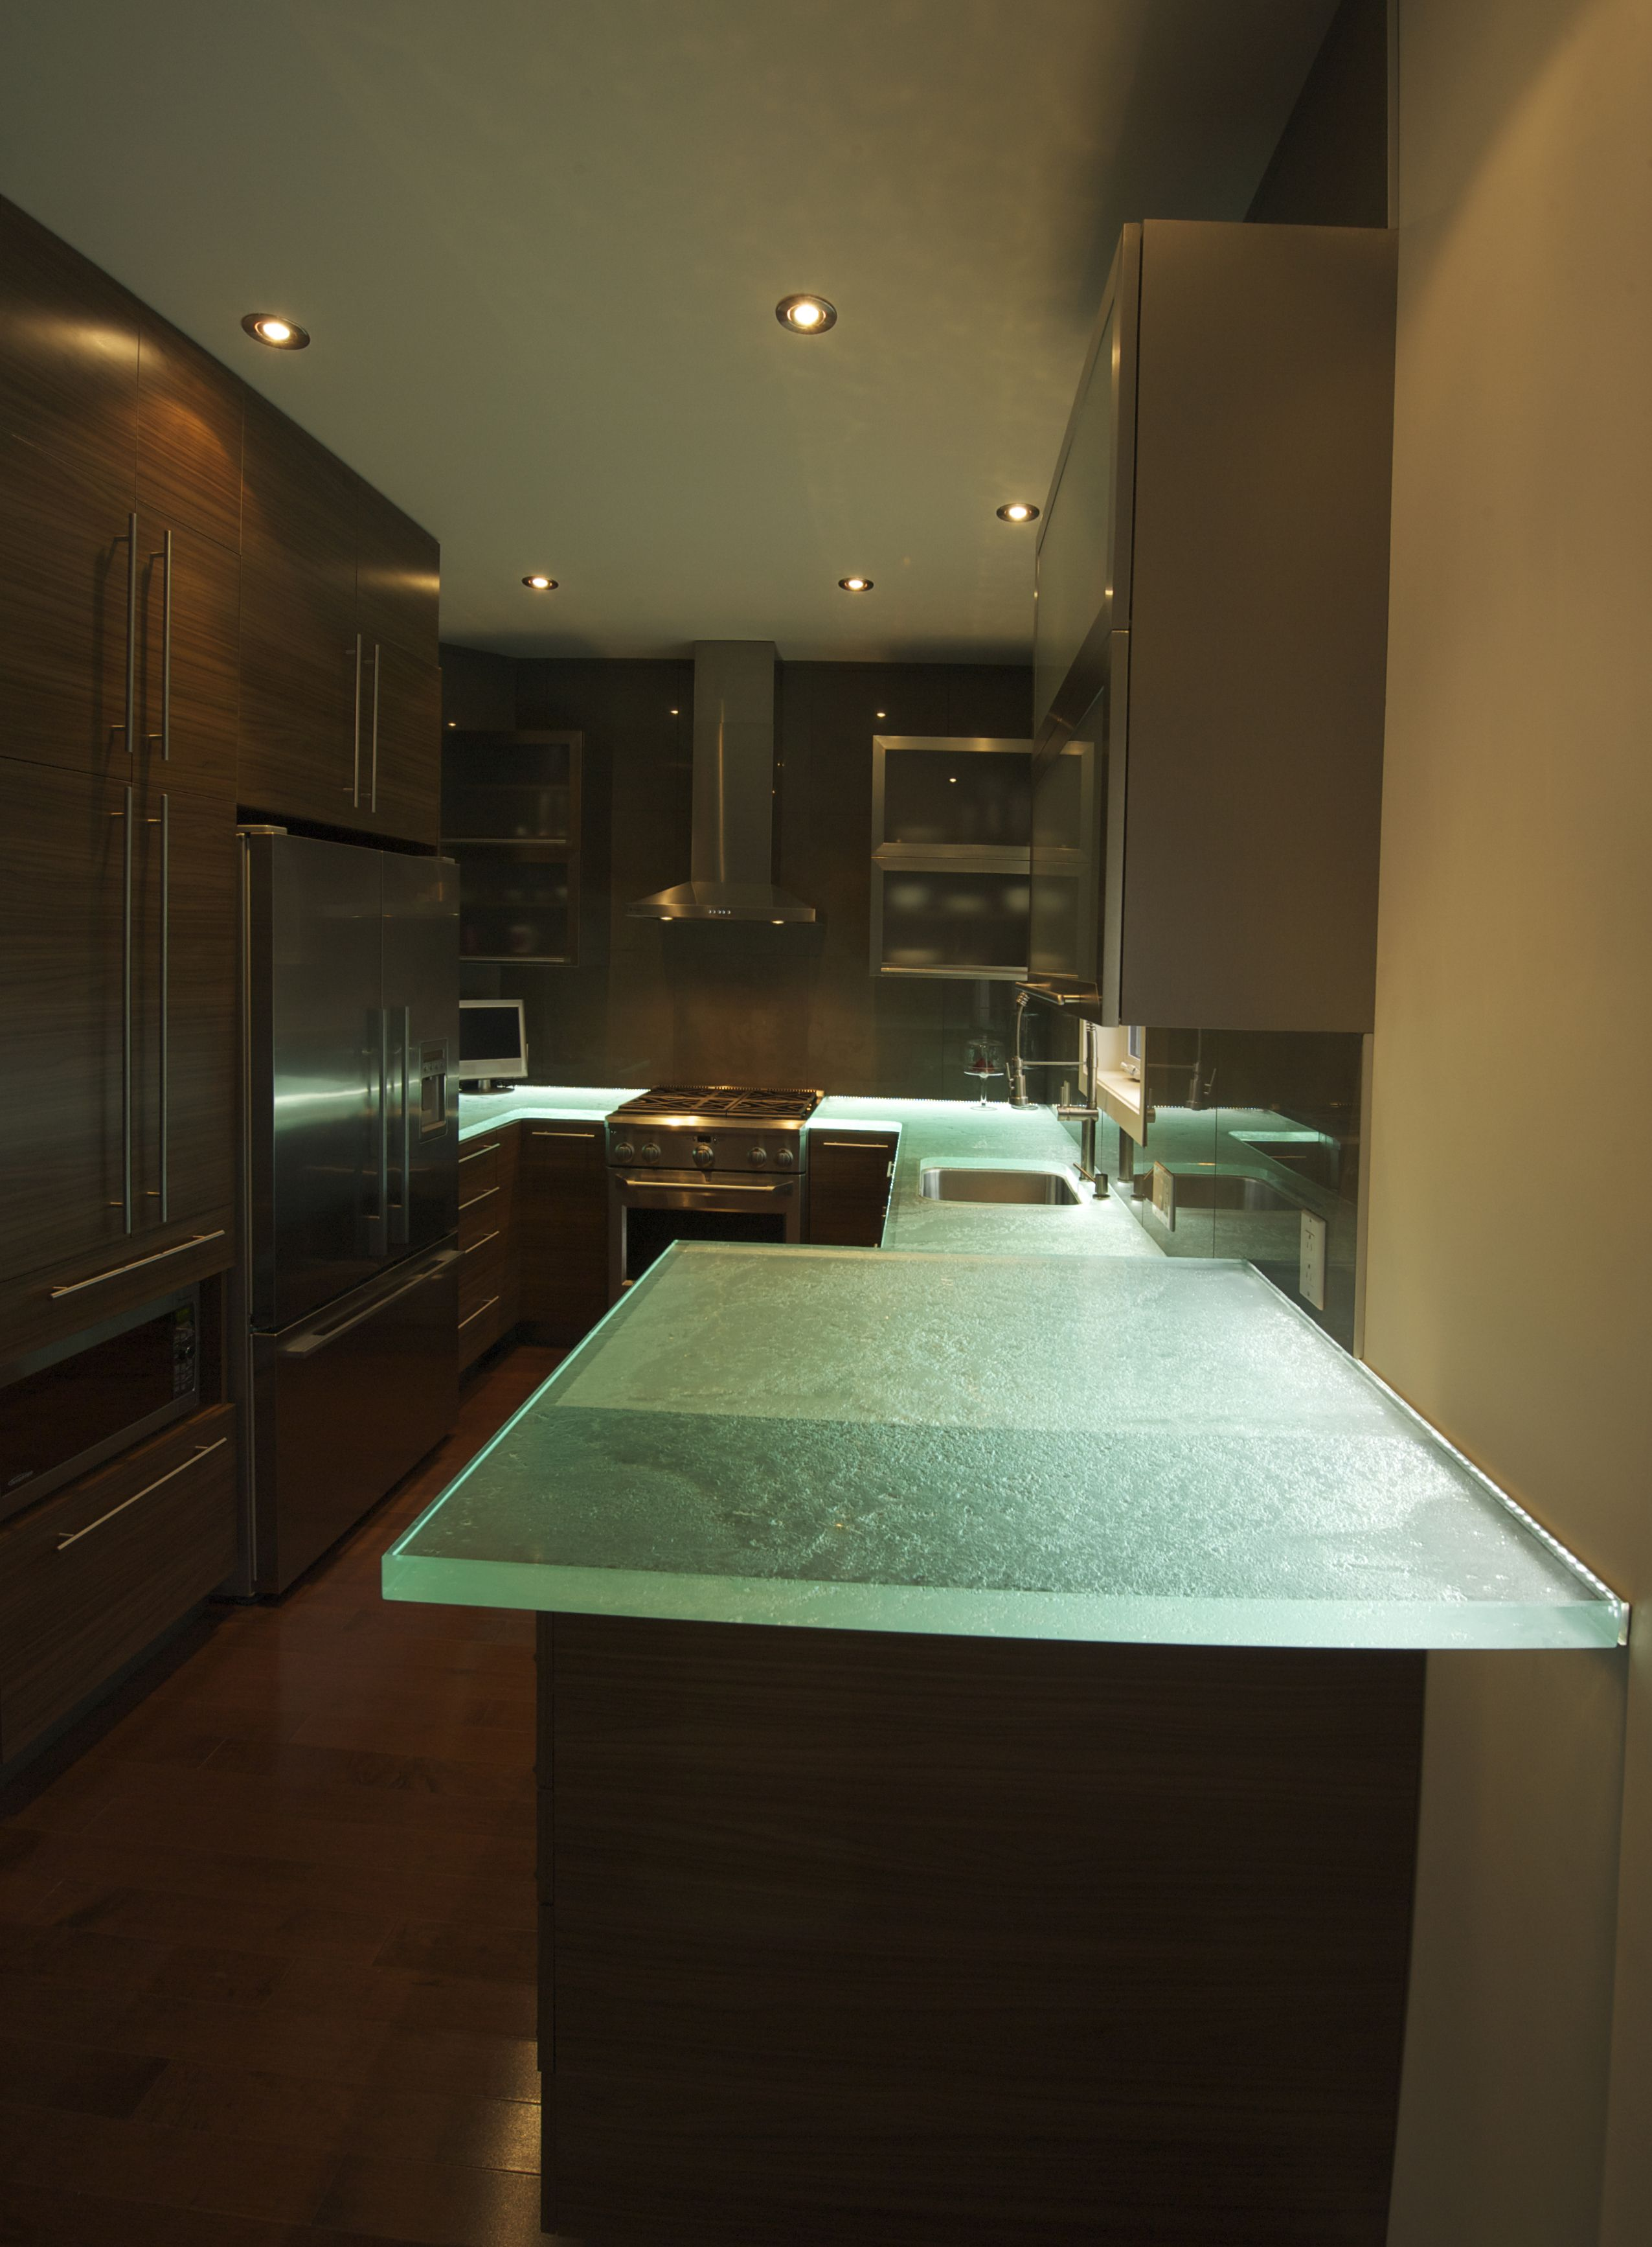 Light up the kitchen with led lights and glass countertops for Small lamps for kitchen counters